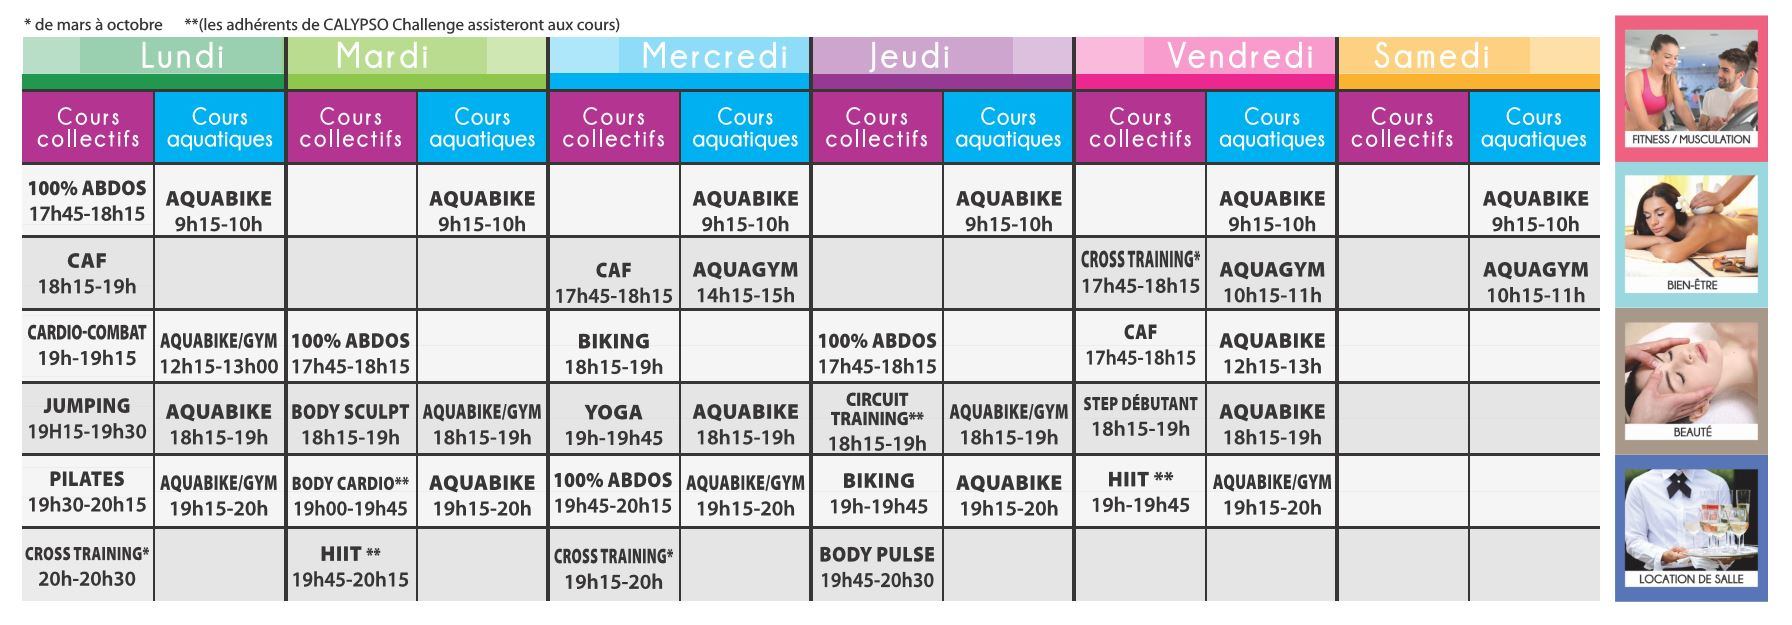 Planning cours collectifs Calypso 2018 janiver